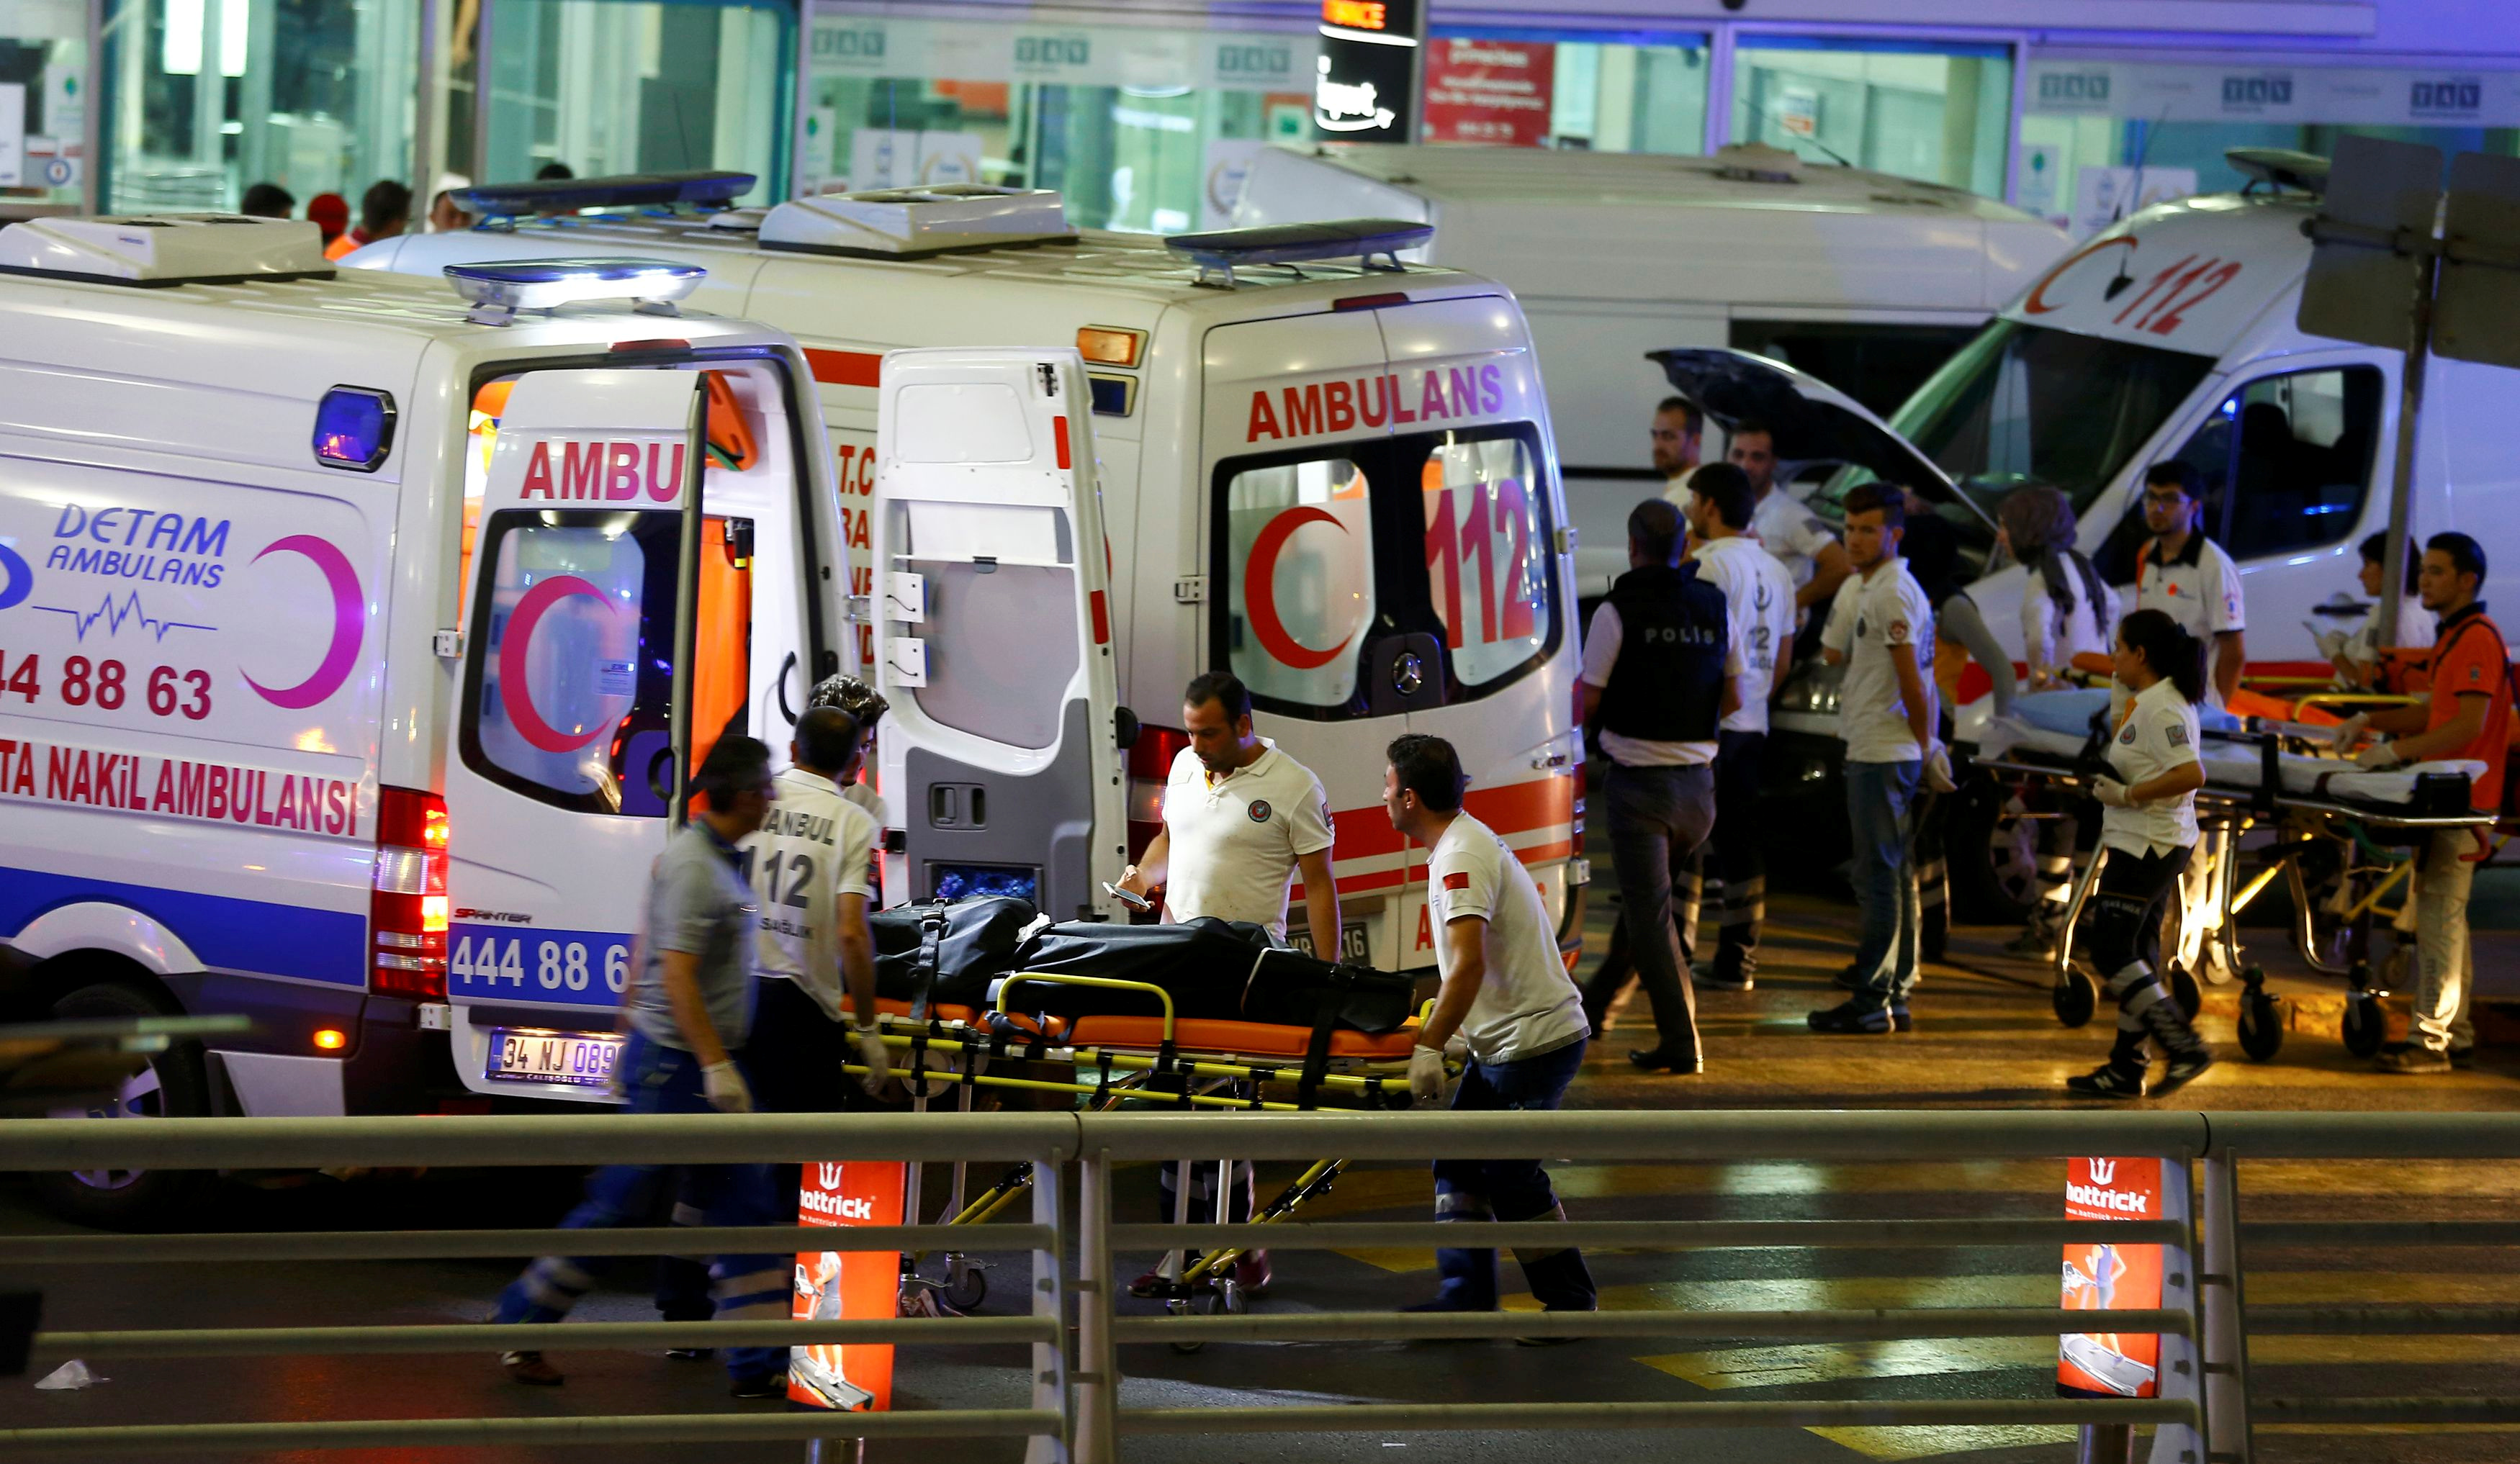 Paramedics push a stretcher at Turkey's largest airport, Istanbul Ataturk